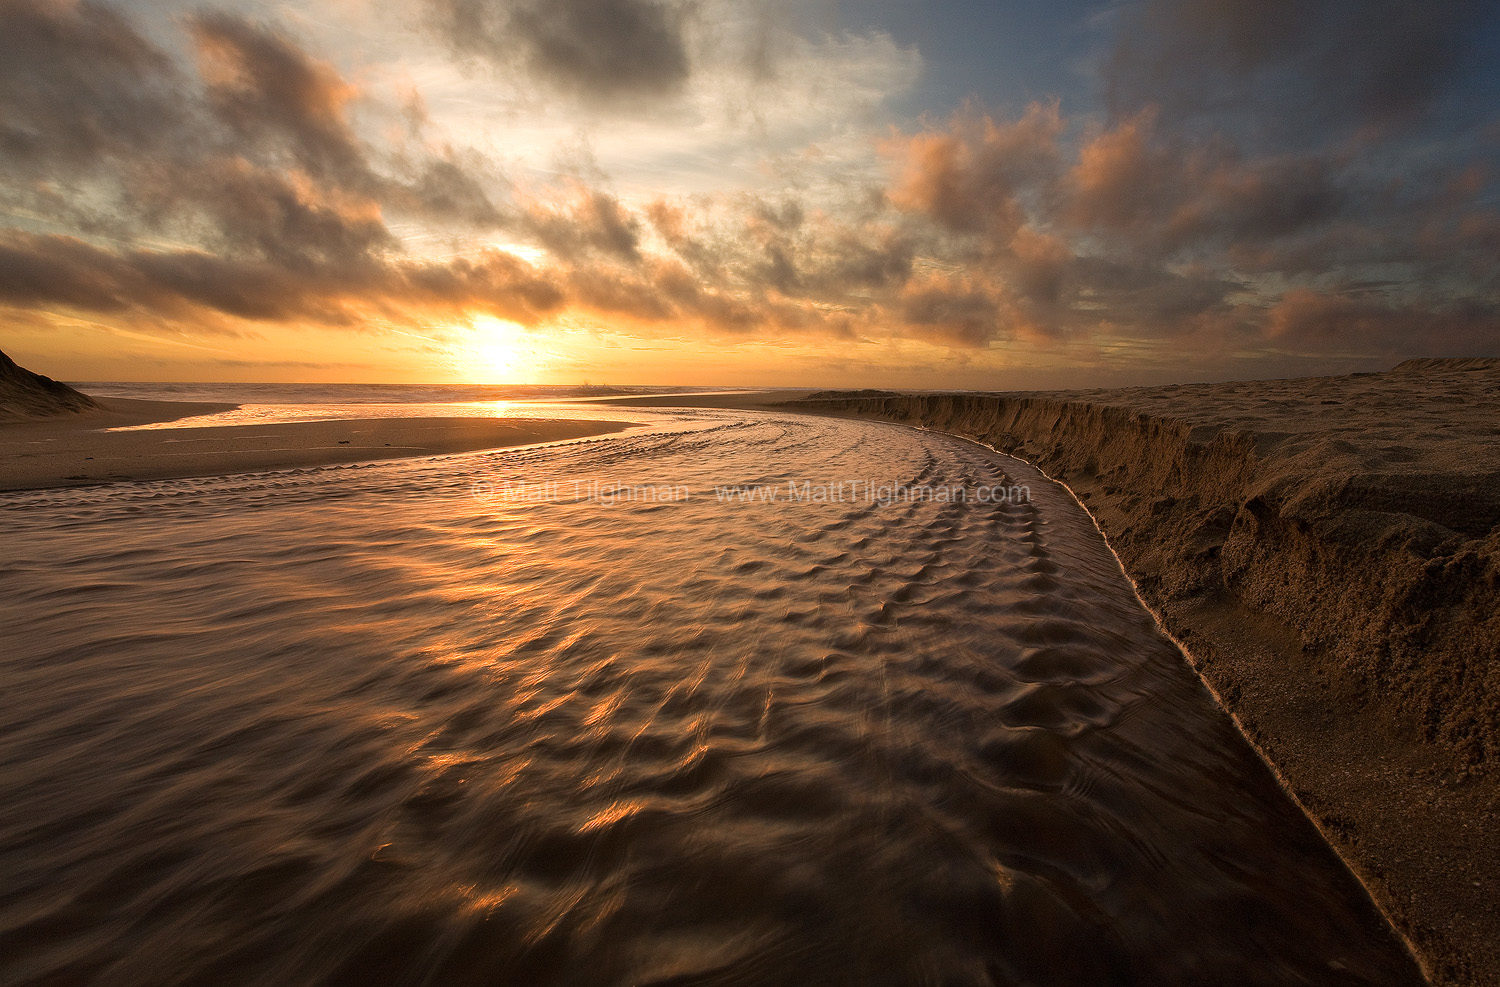 Fine art stock photograph from Montara State Beach, near Pacifica, California. Martini Creek finds its way to the Pacific Ocean as the sun sets beyond.